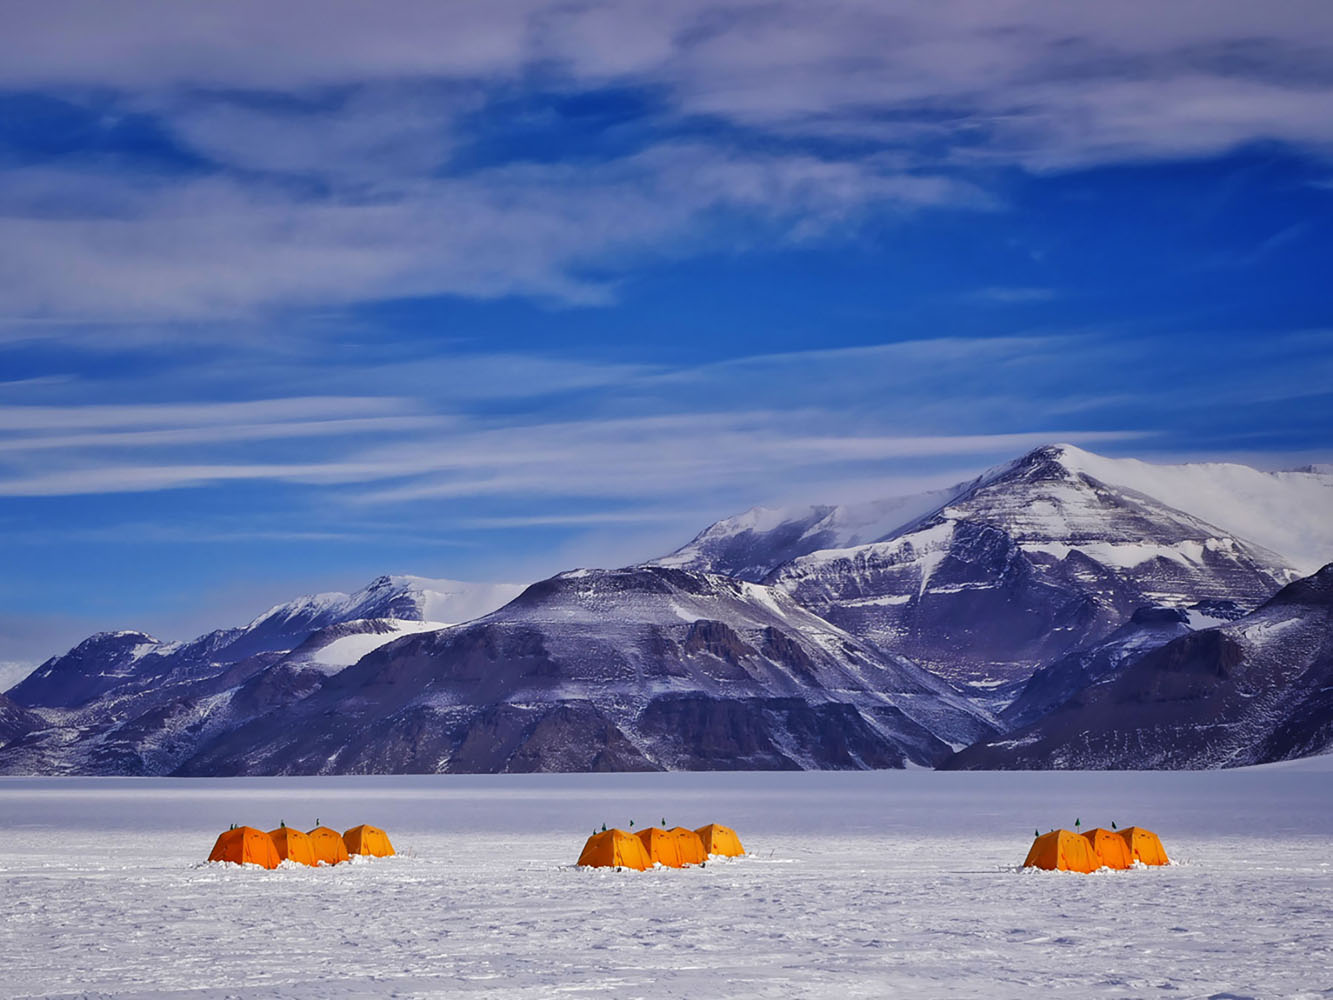 Orange tents that house scientists in Antarctica.